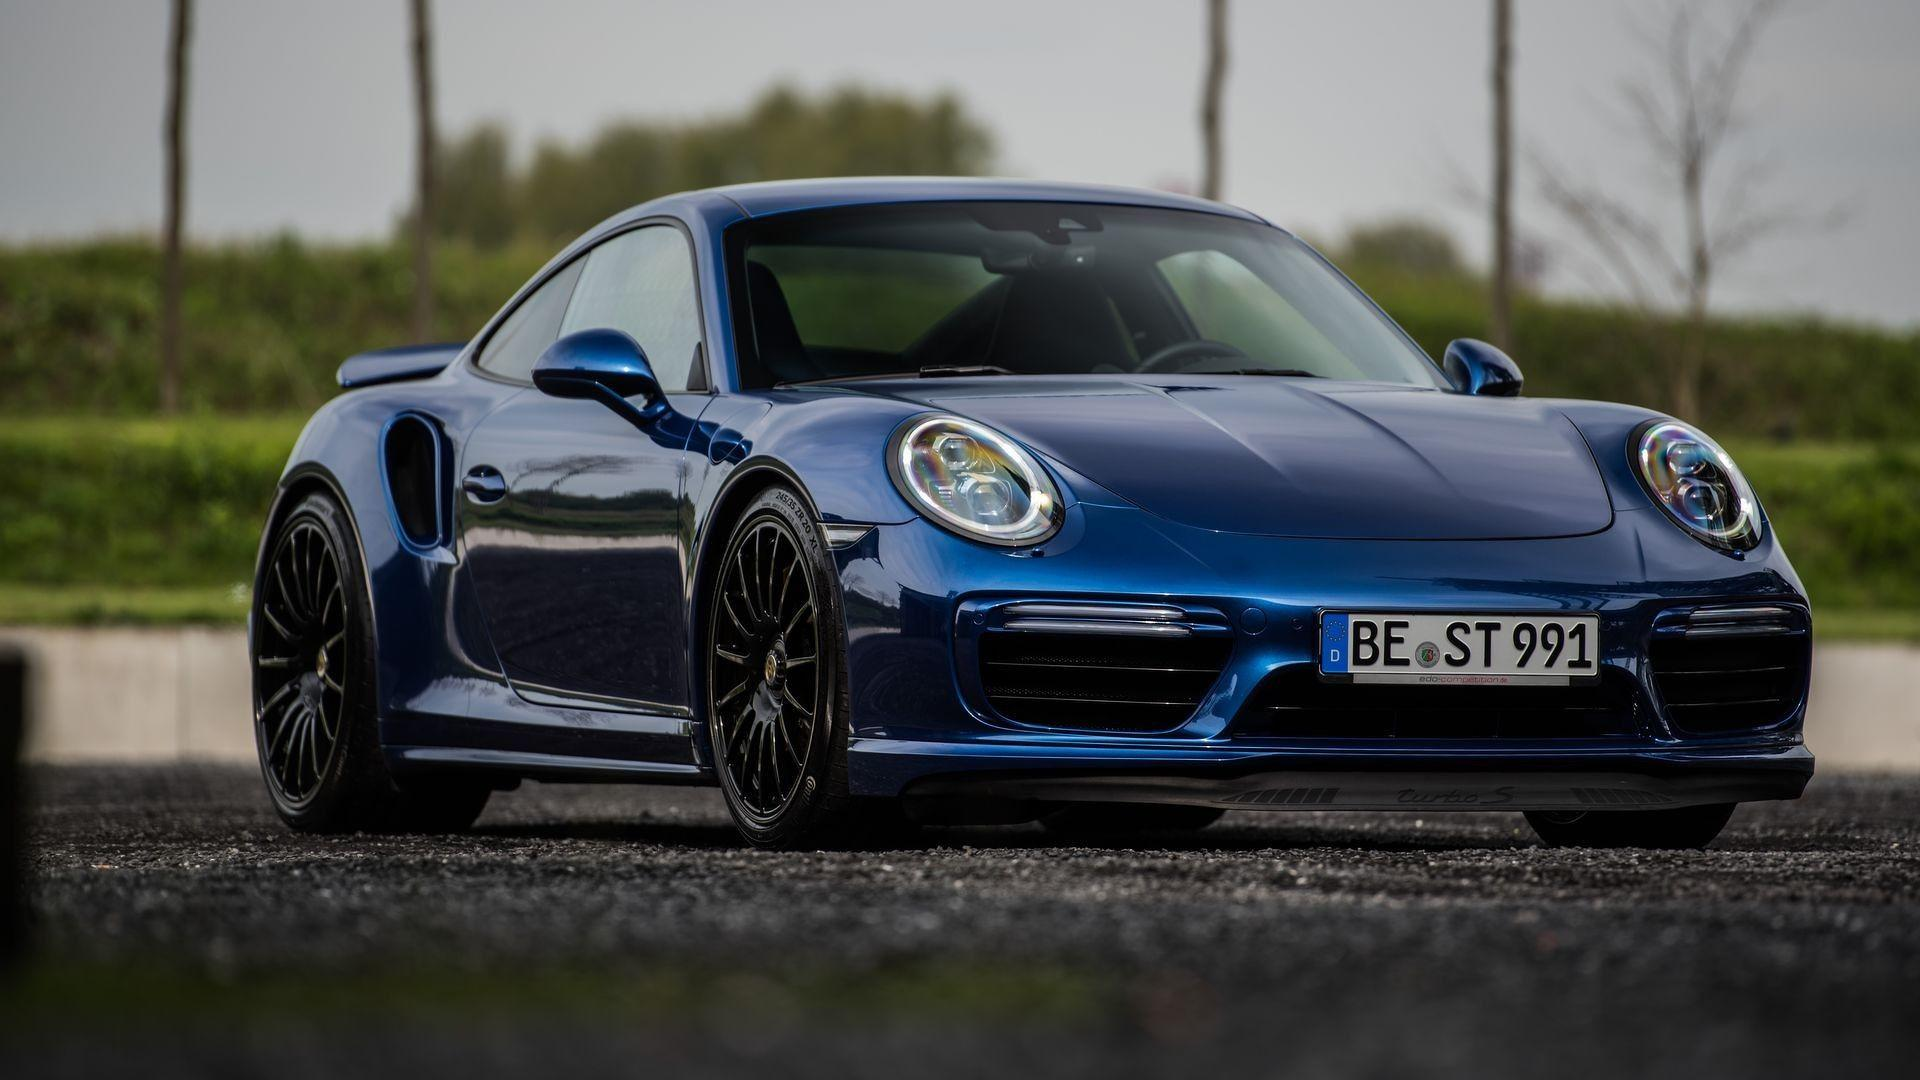 d951bd57ad6b Fastest Porsche 911 Turbo S Of This Generation Hits 213.86 MPH